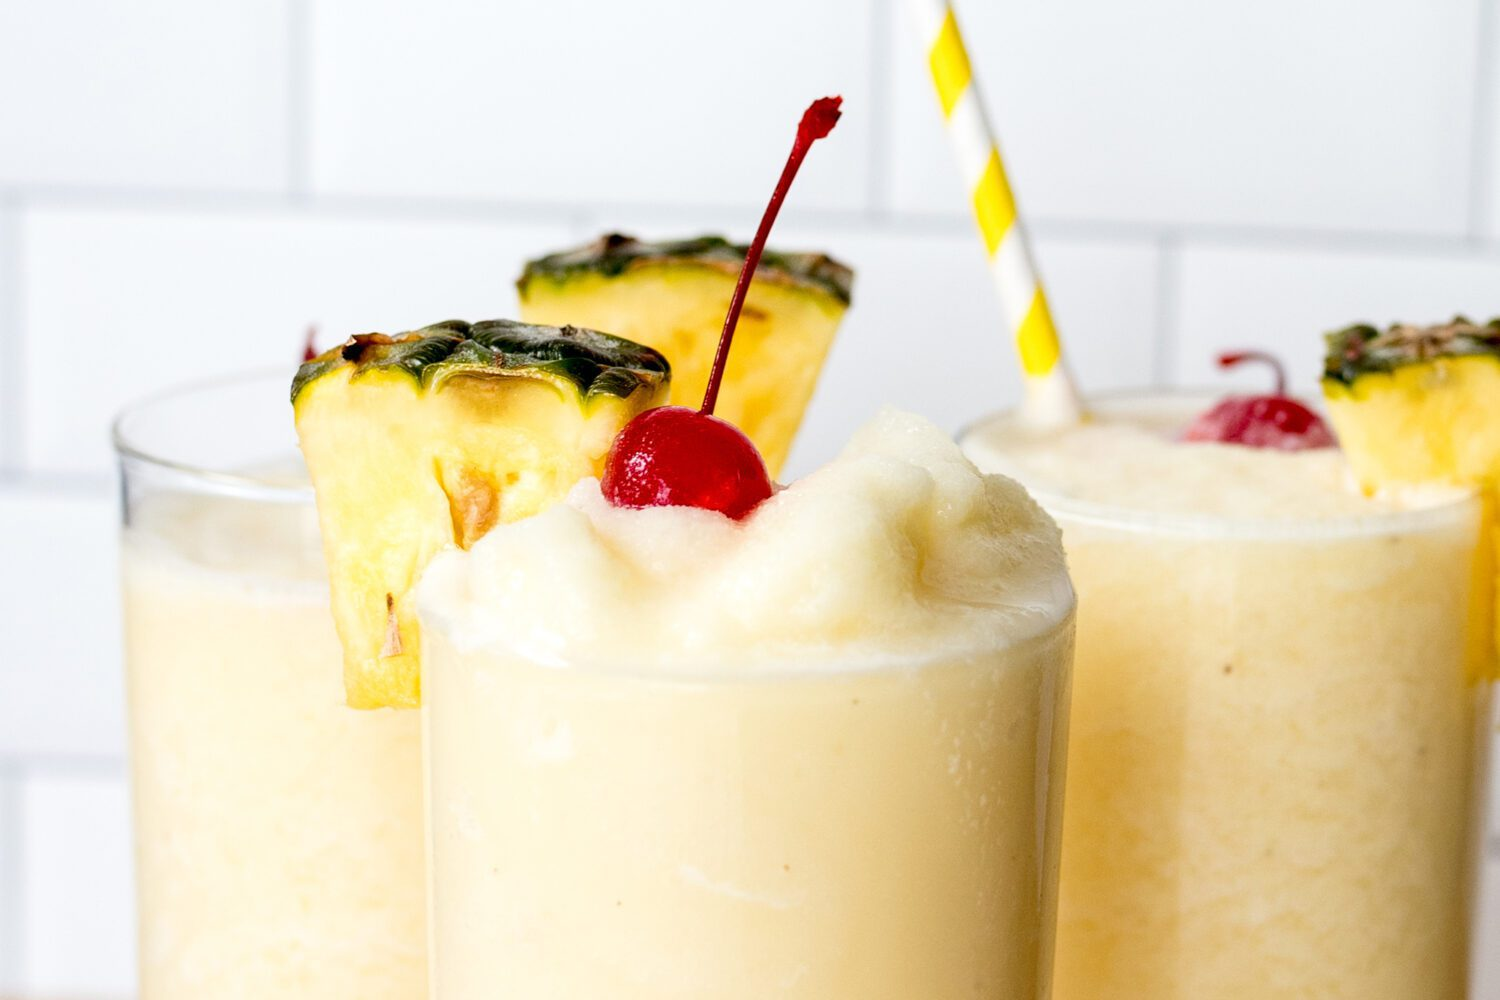 piña coladas with cherries and pineapple wedges